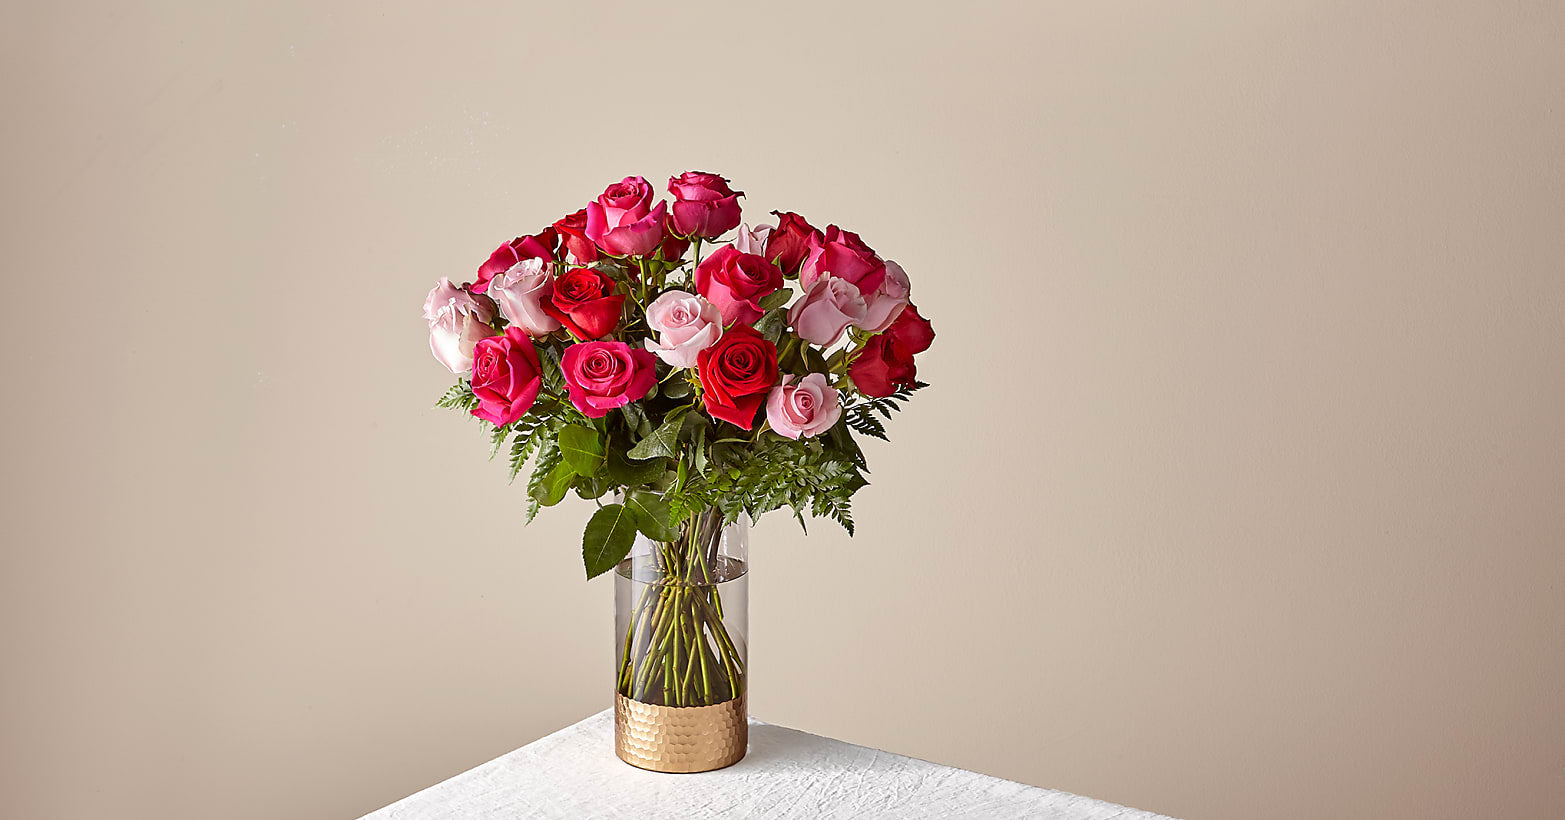 Rose Colored Love Bouquet - Image 1 Of 6